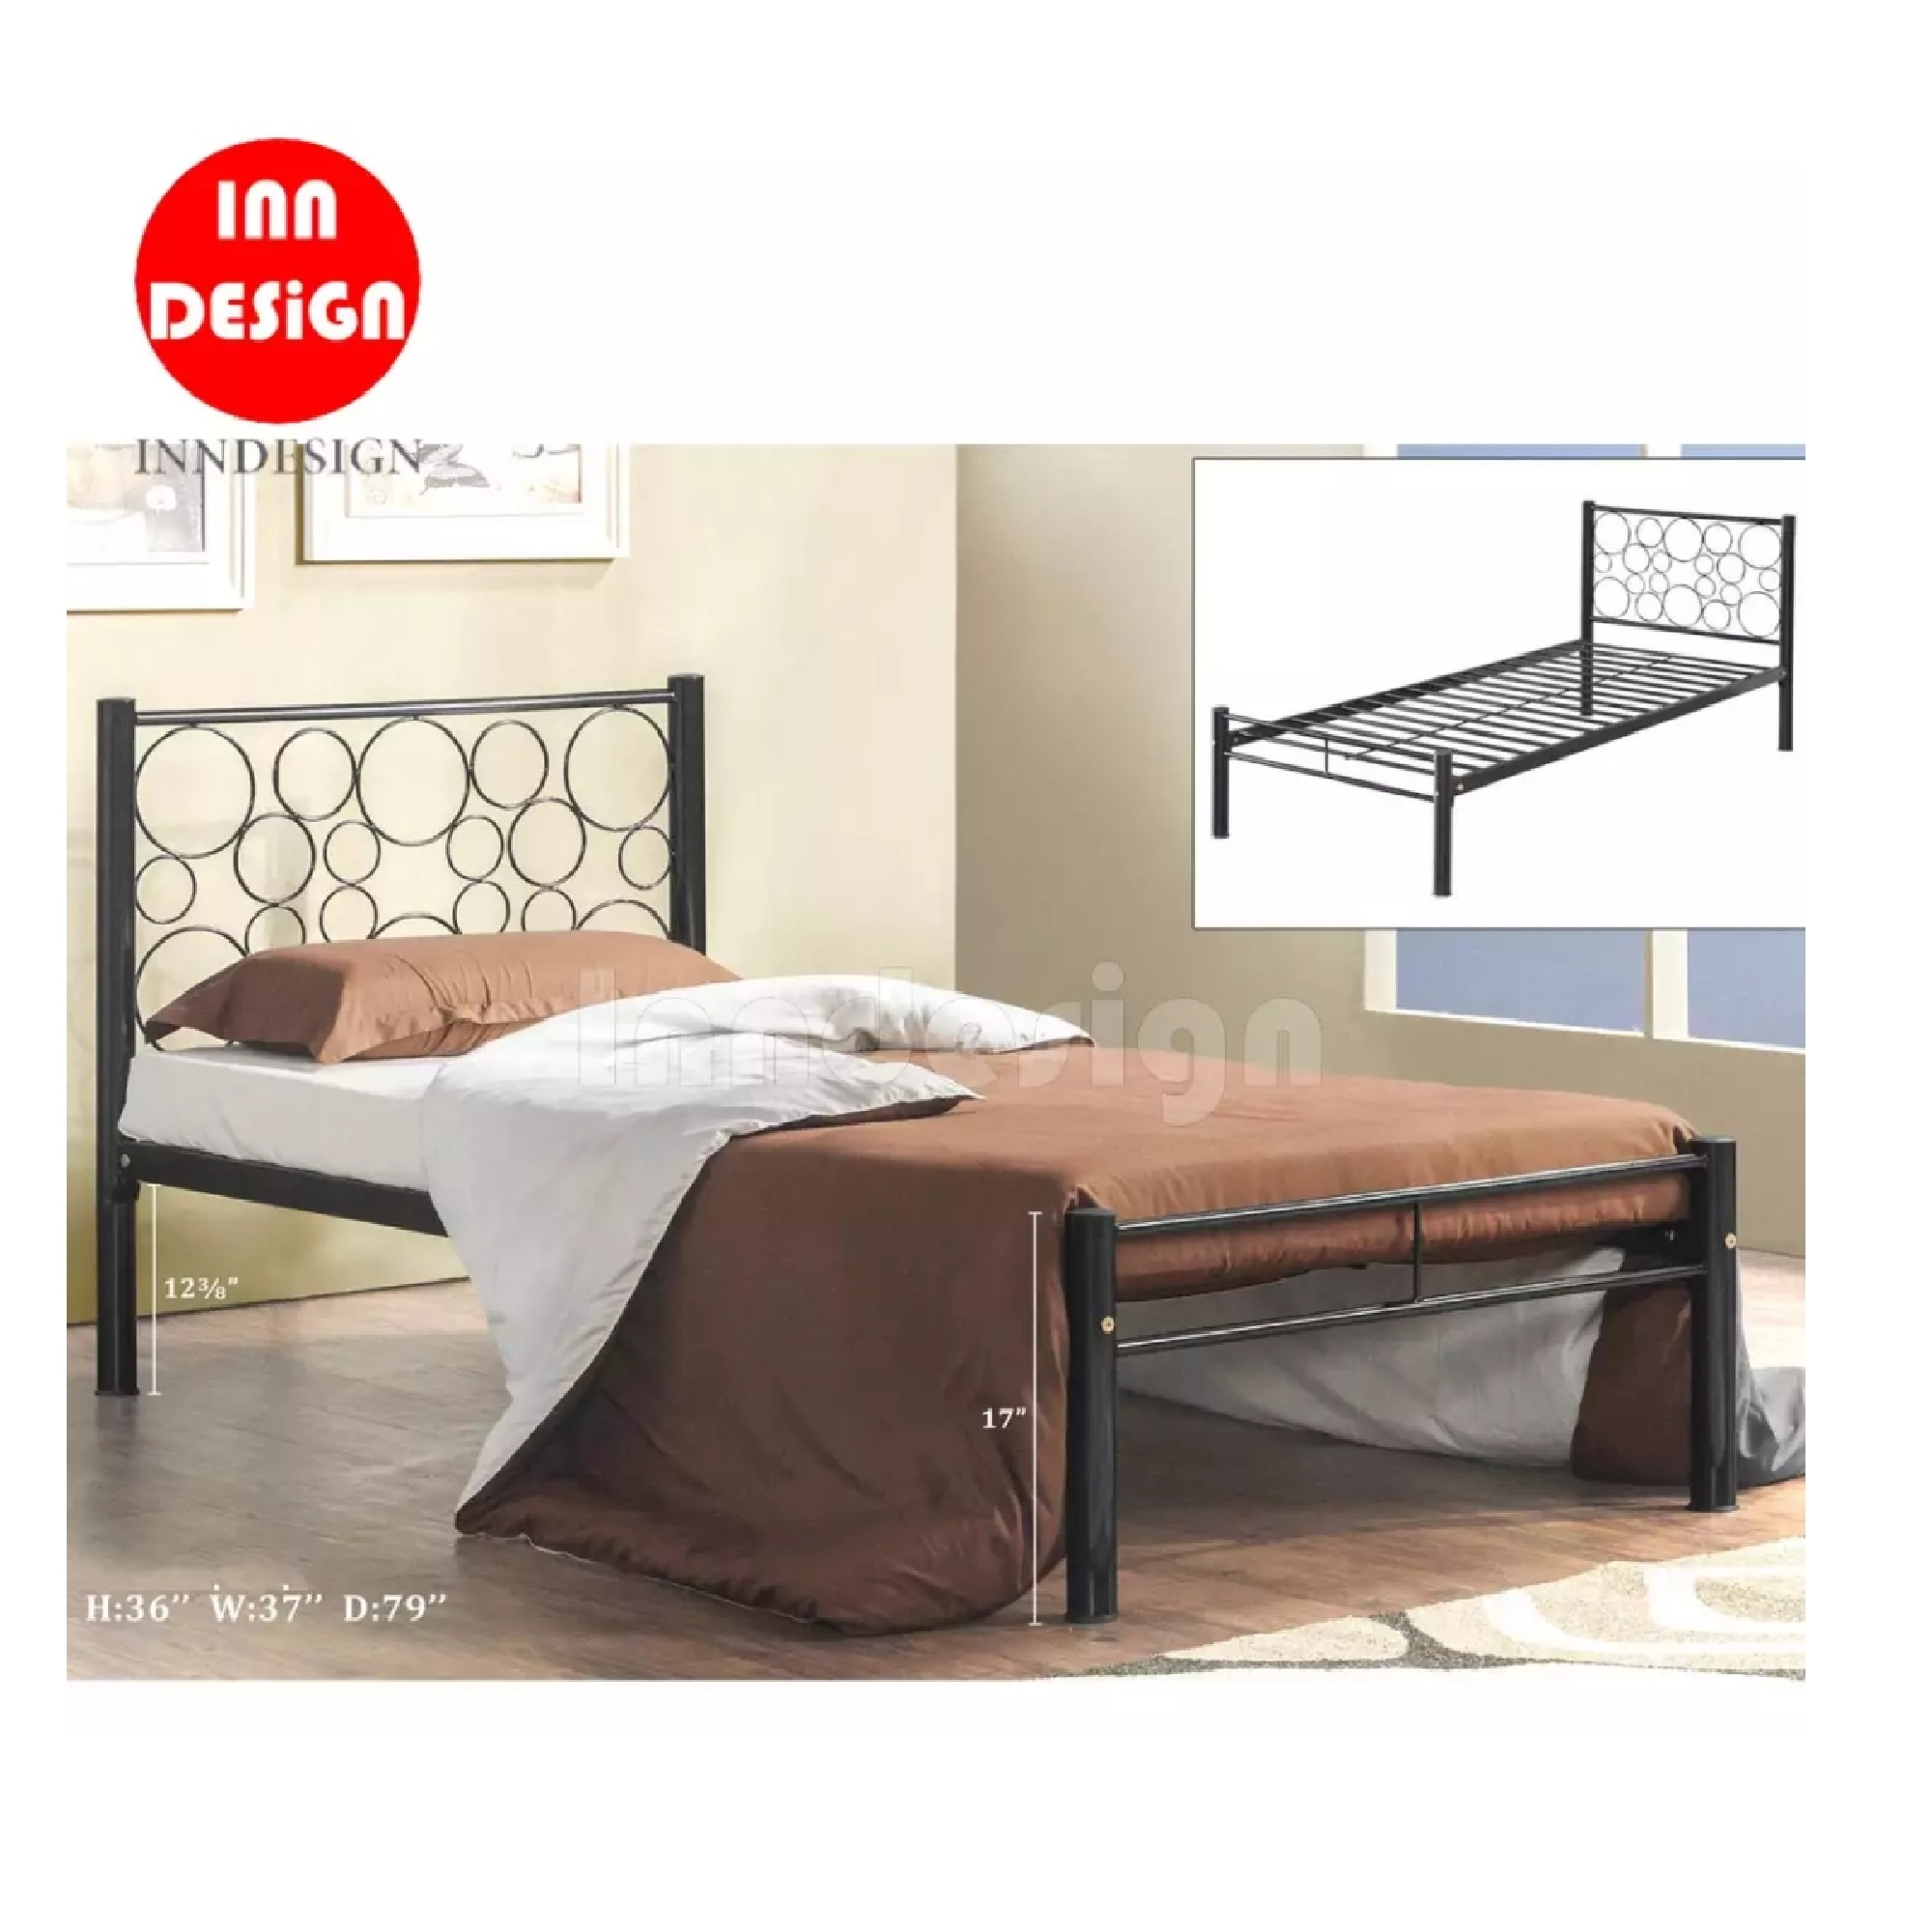 Single Metal Bed / Metal Bed Frame (Black)